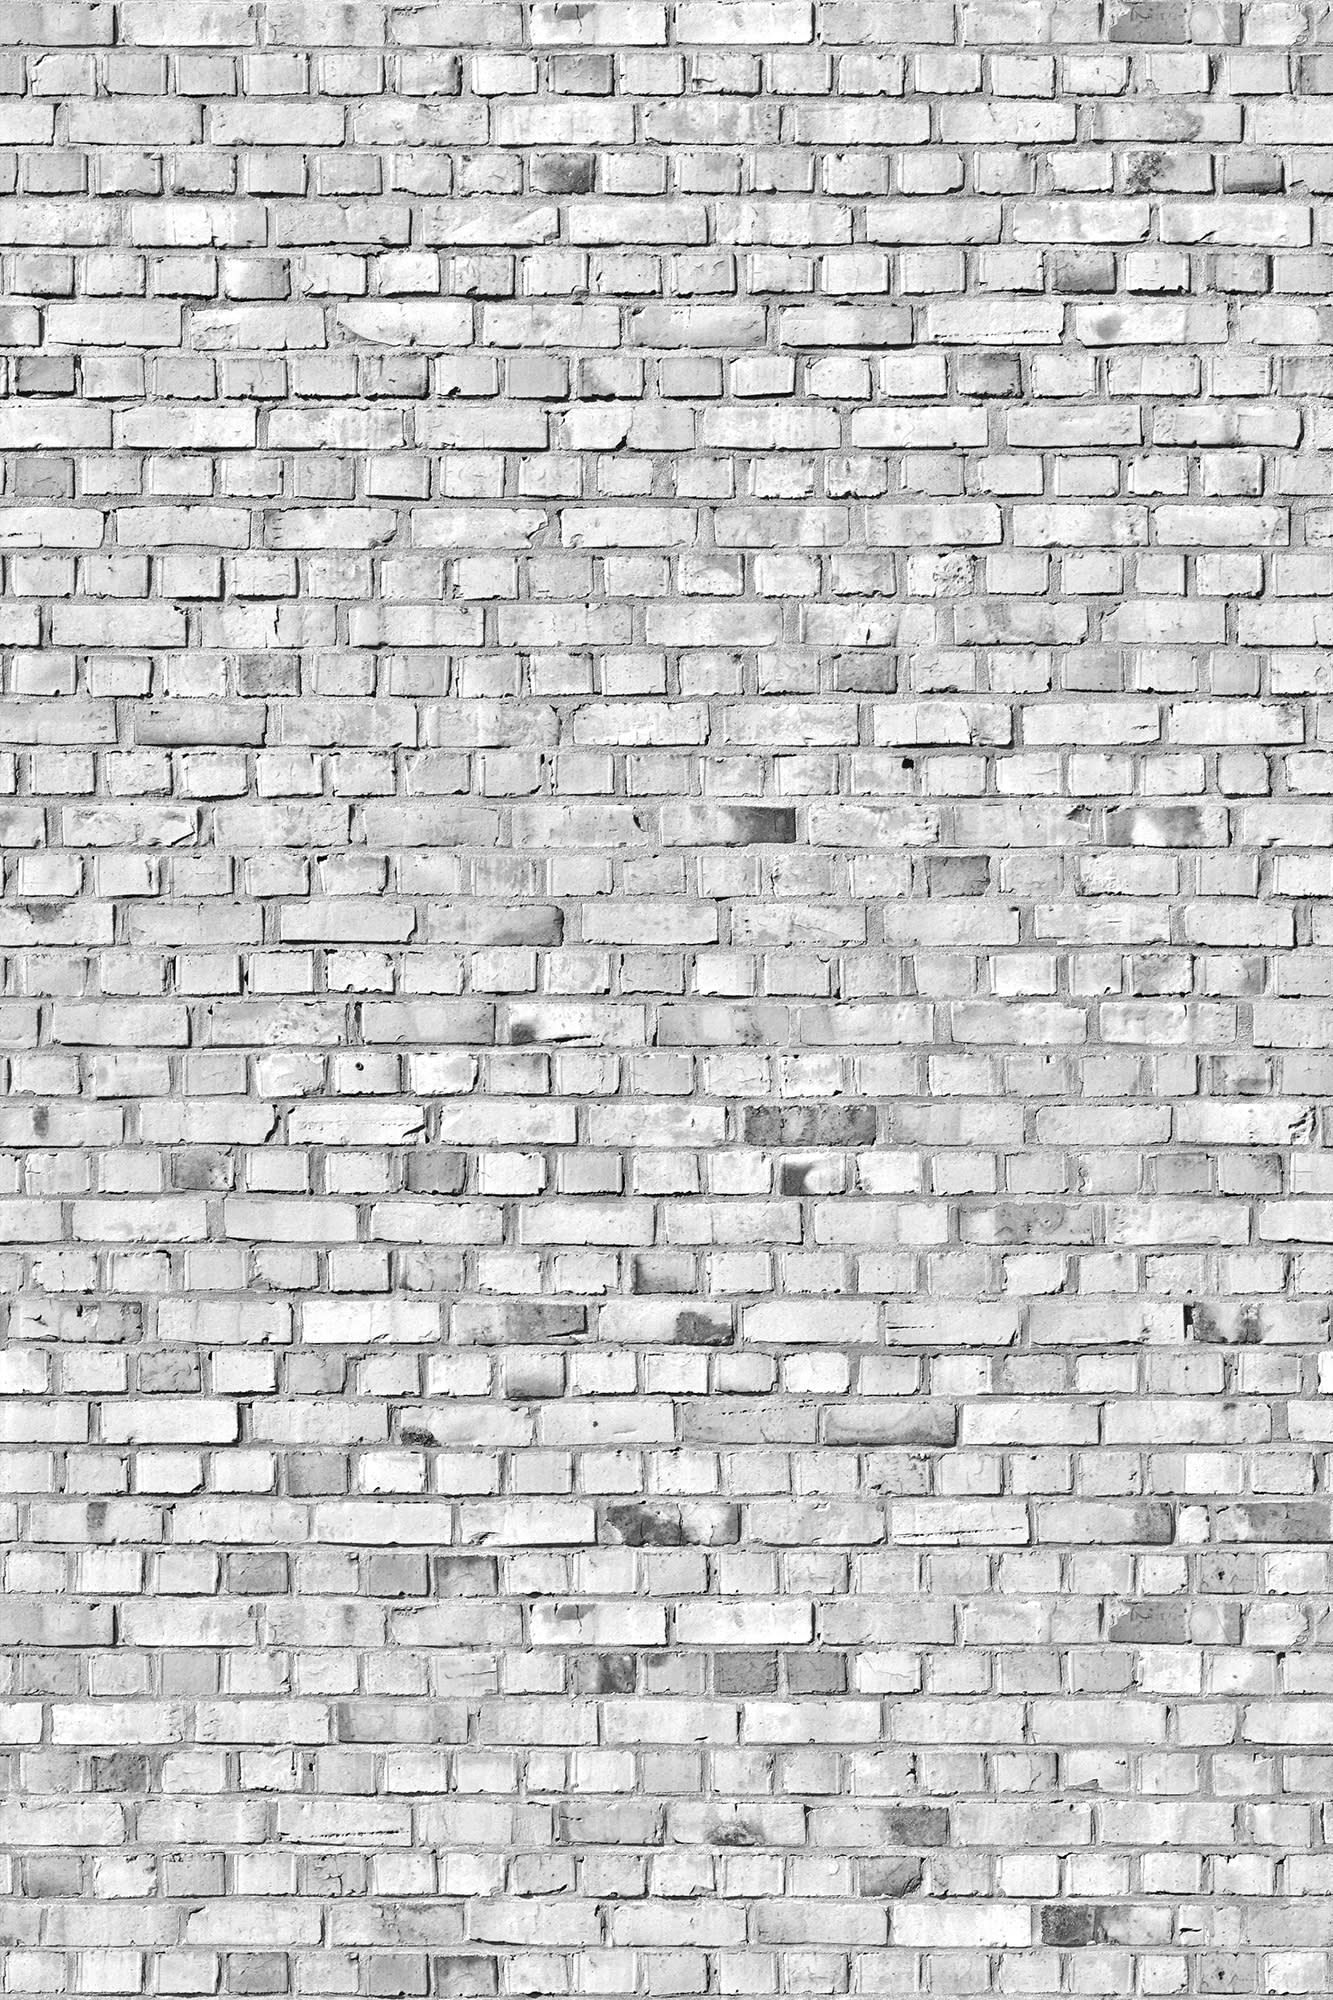 Brick Wall White Brick Wall Wallpaper Brick Wall Drawing Brick Wall